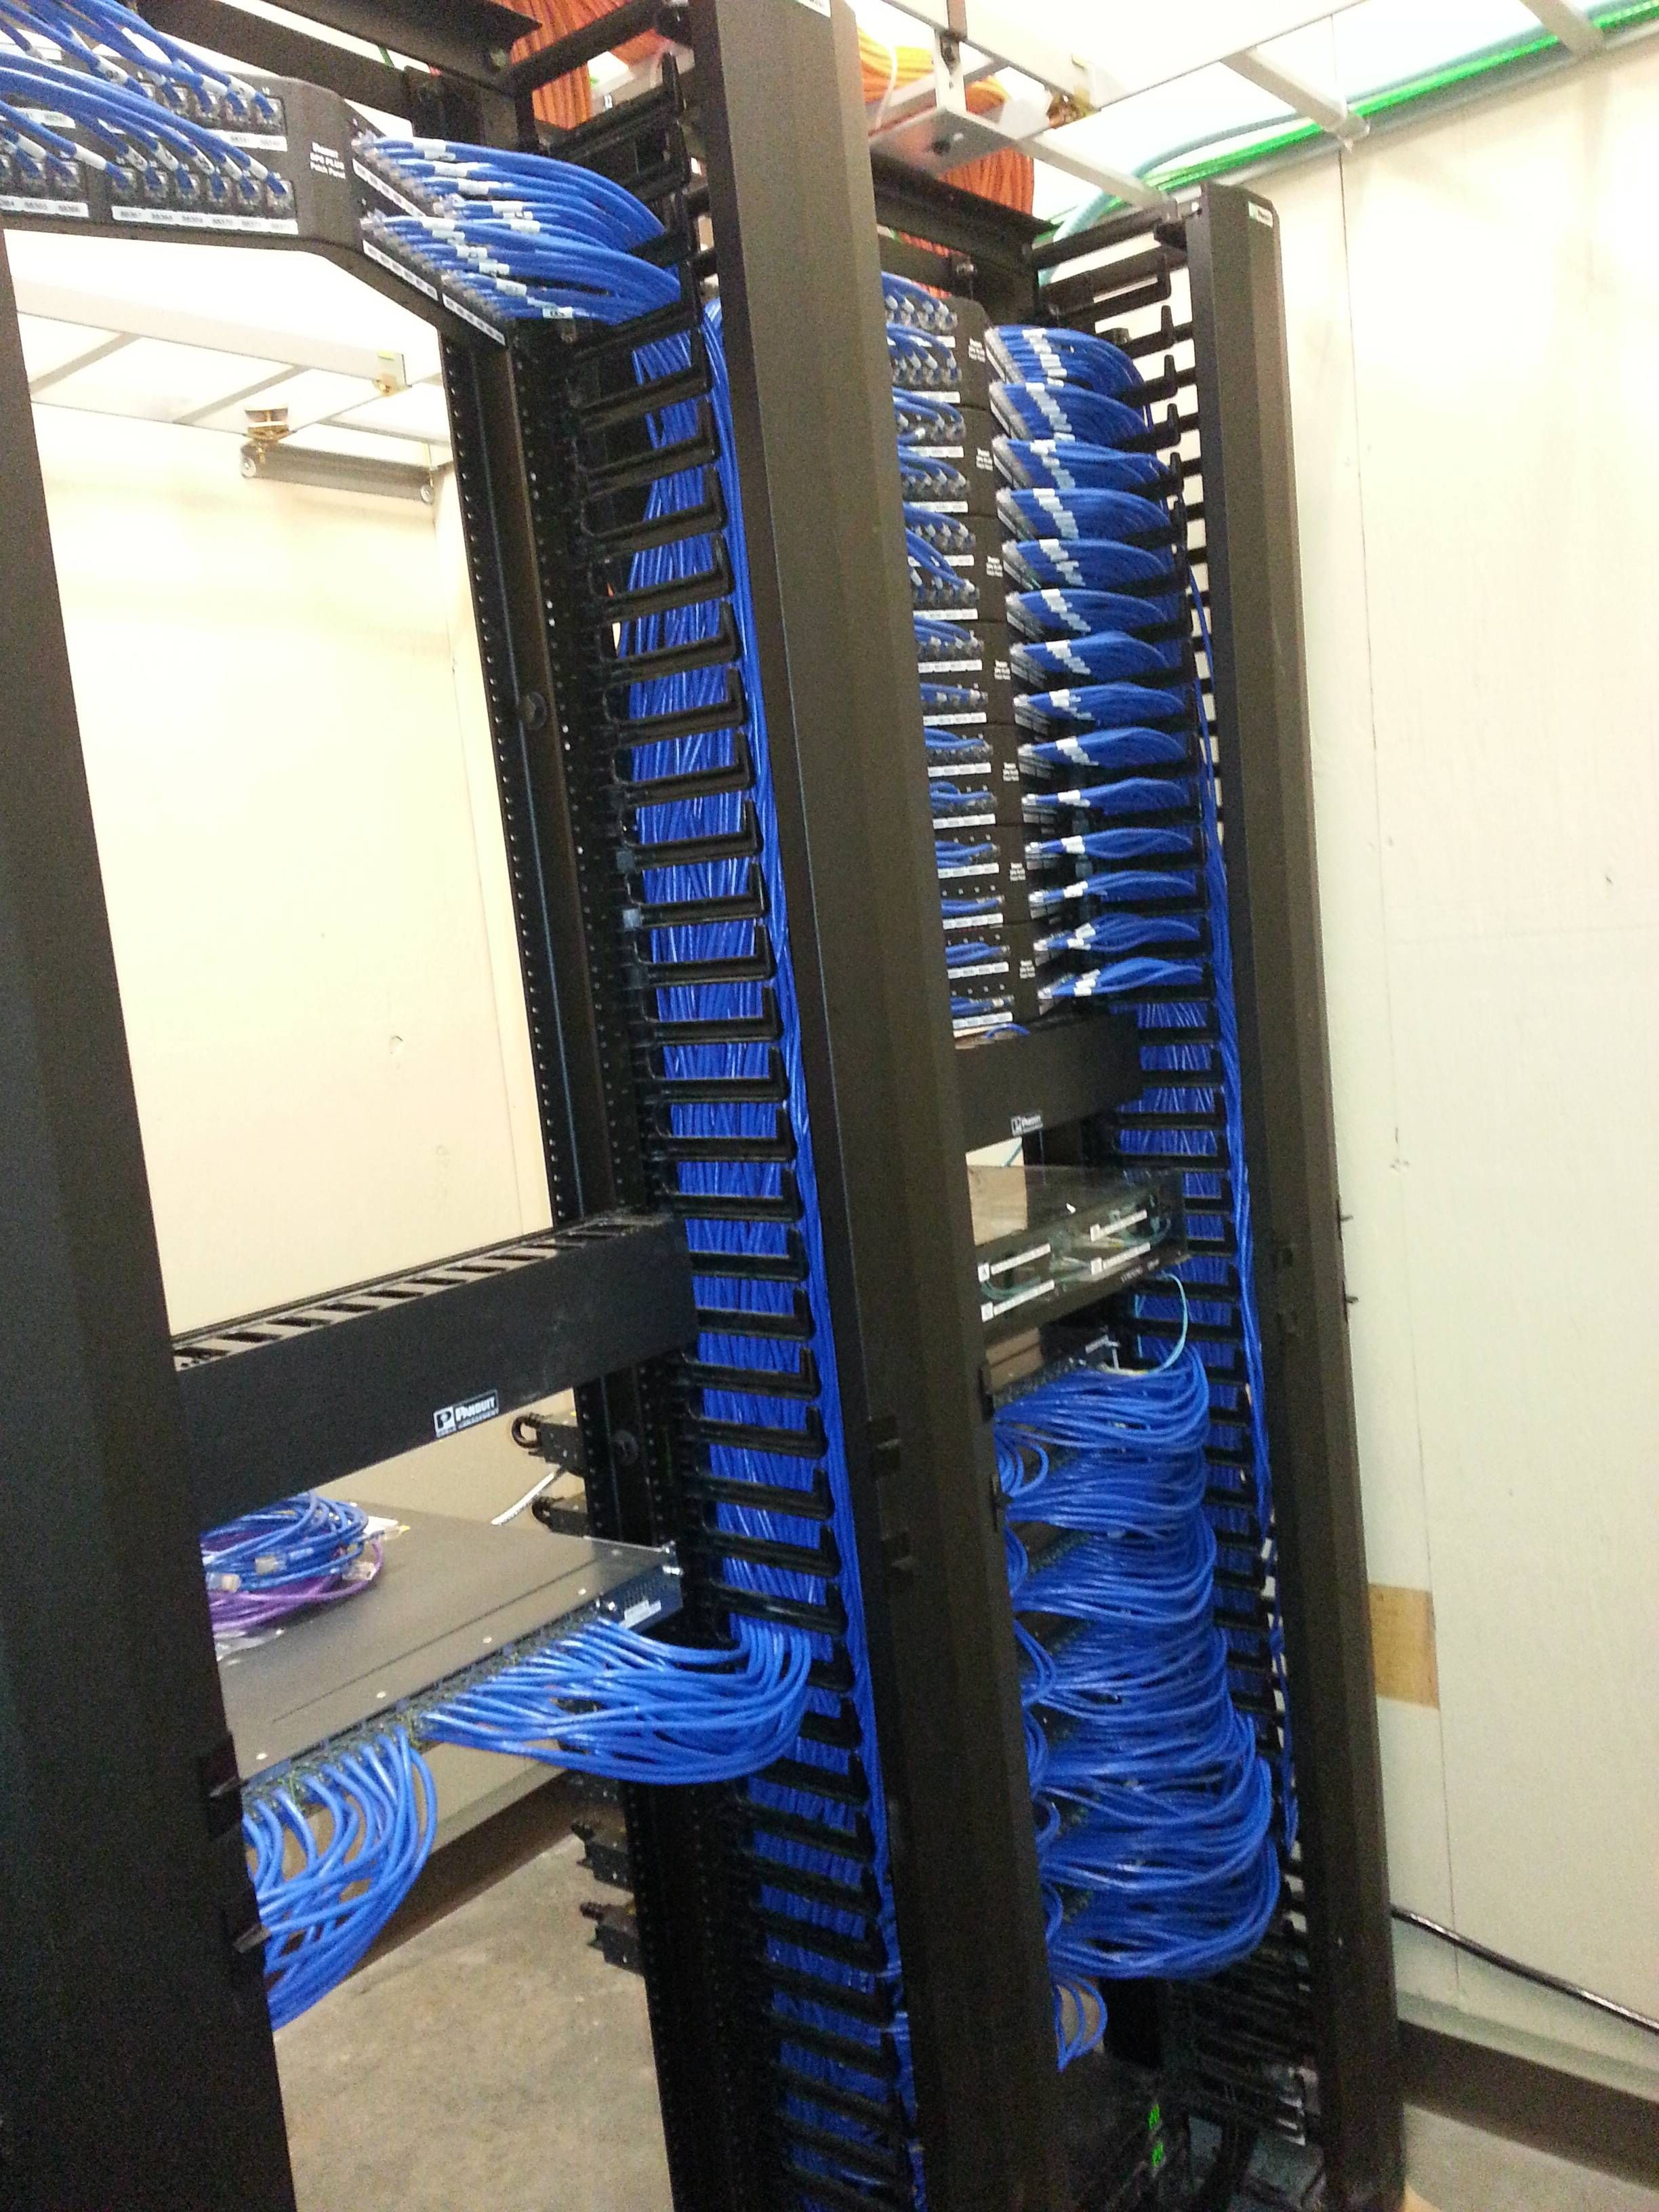 clean patch panel closet install. blue ethernet cables and patch